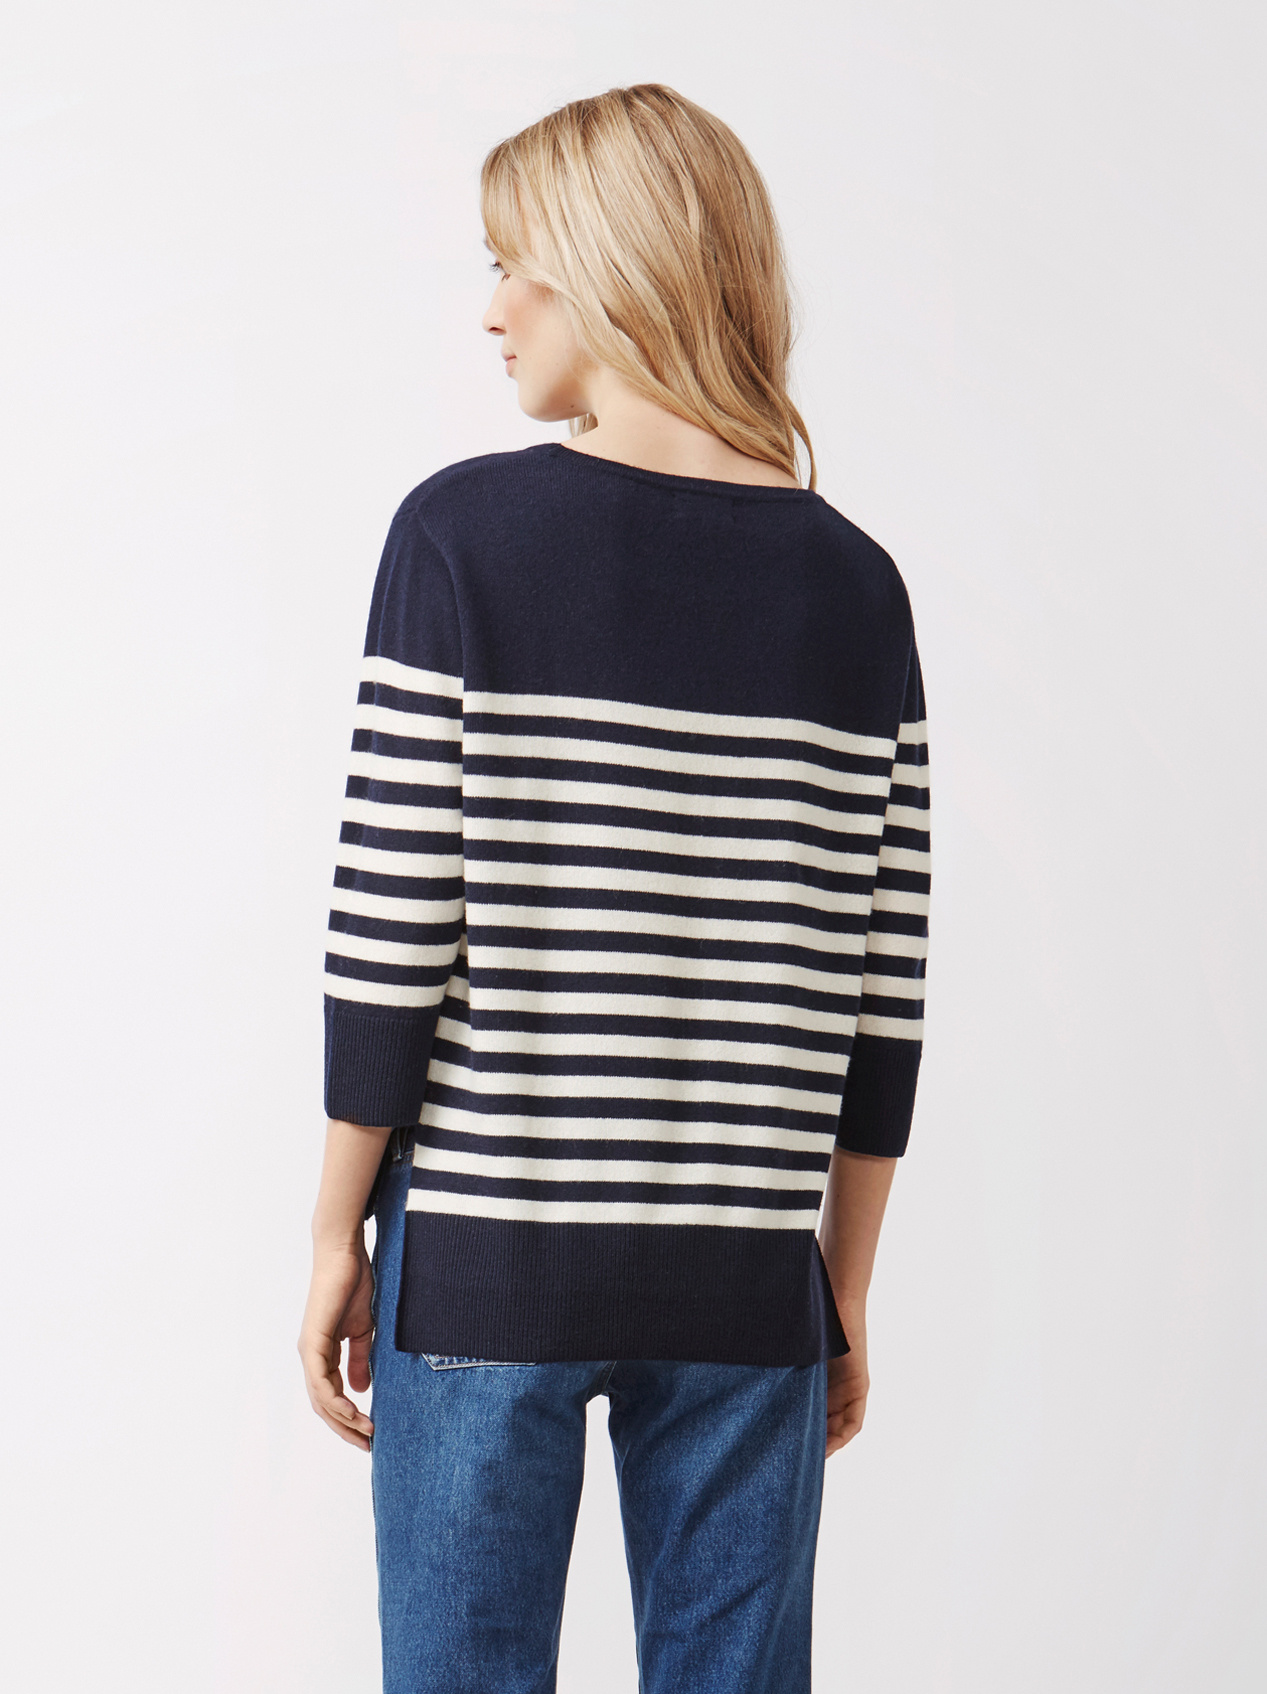 Soft Goat Women's Striped Sweater Navy